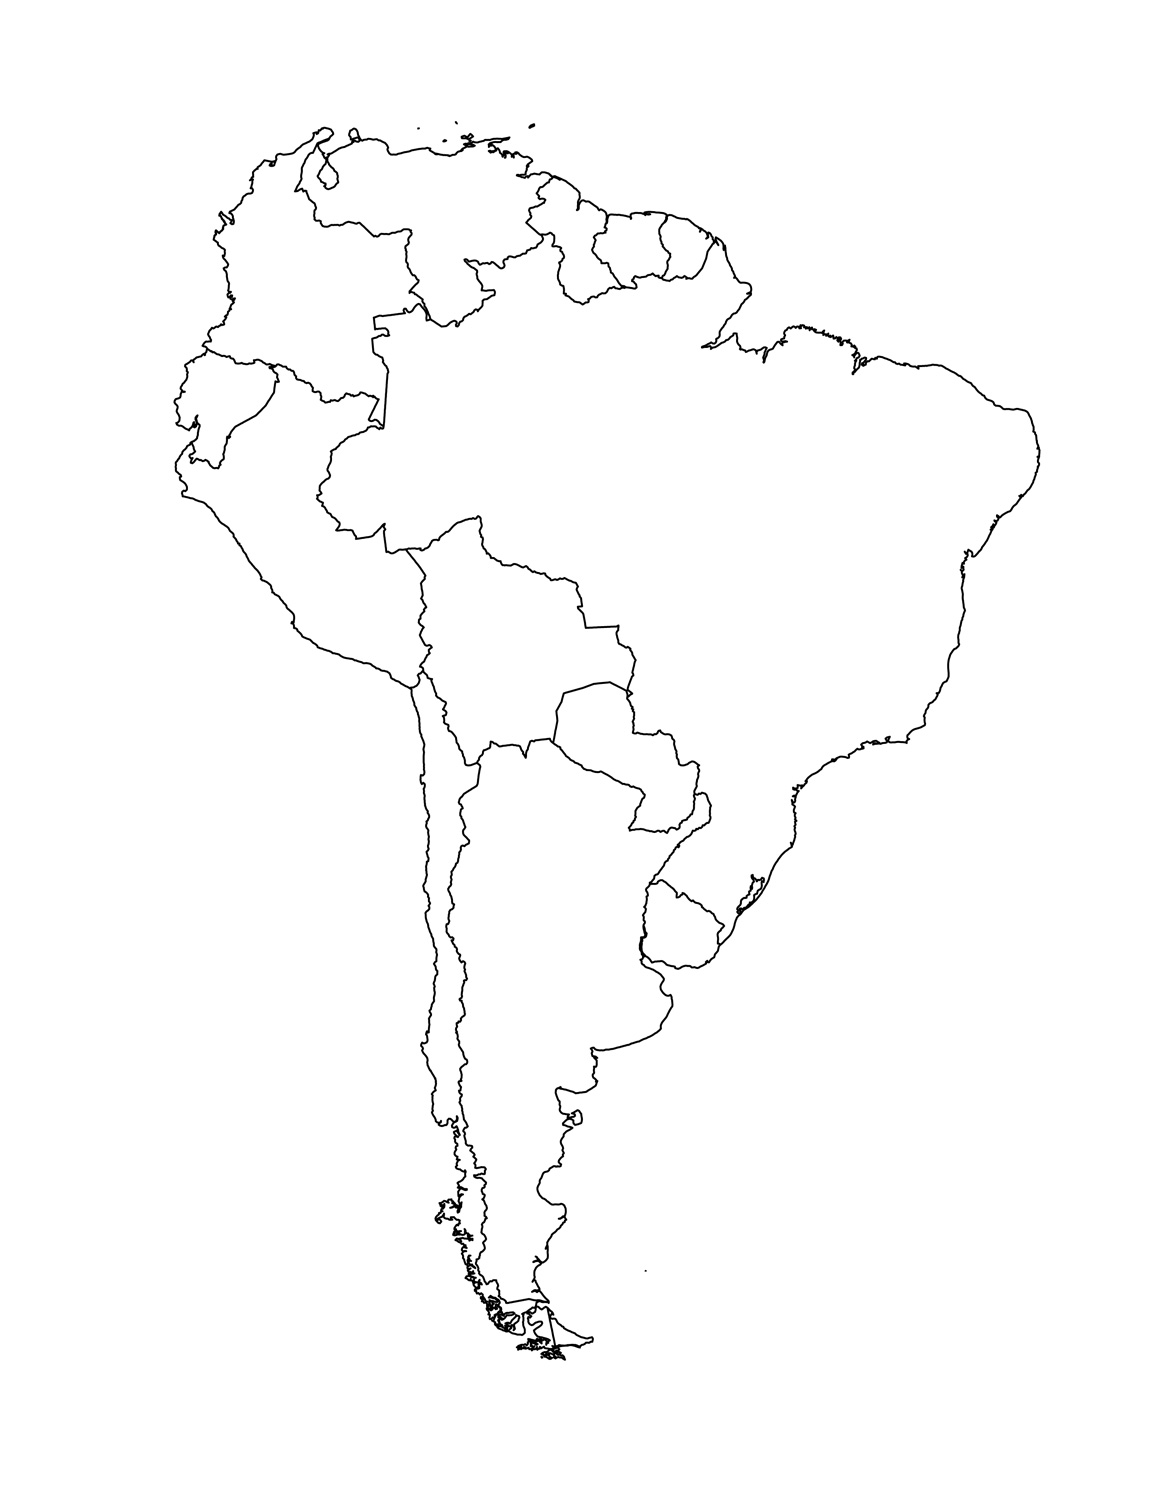 australia map coloring page south america free coloring pages